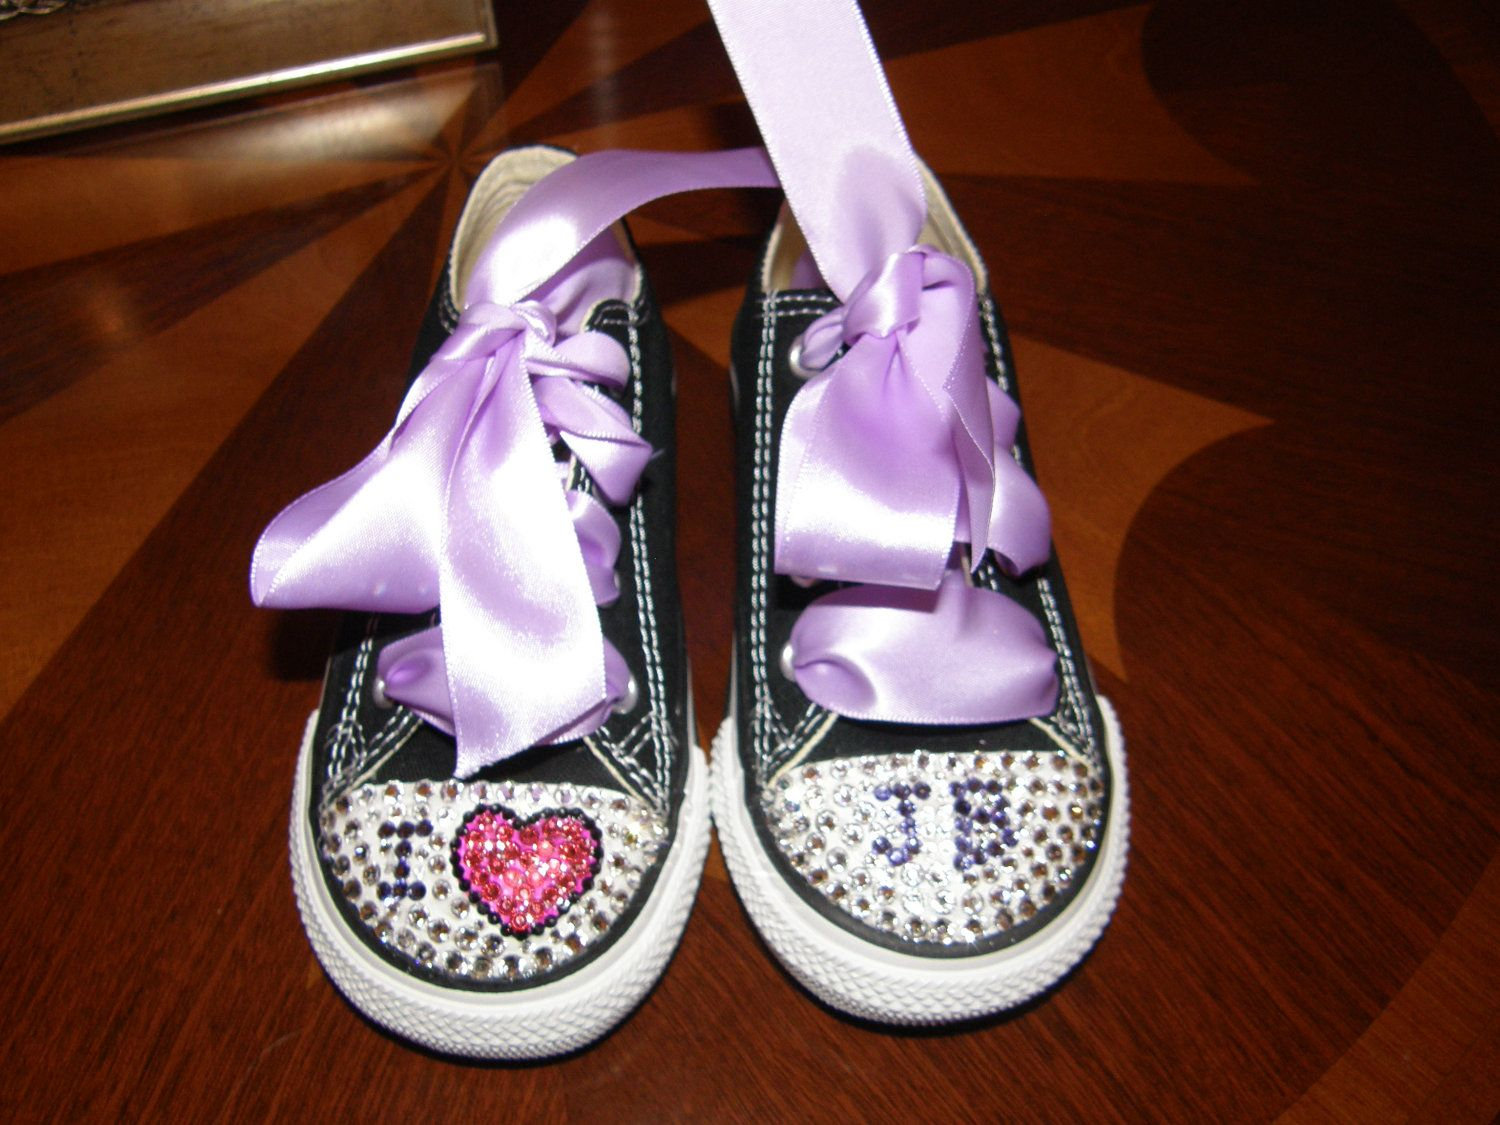 Converse customs with Swarovski crystals. Baby Bieber style. $70.00, via Etsy.